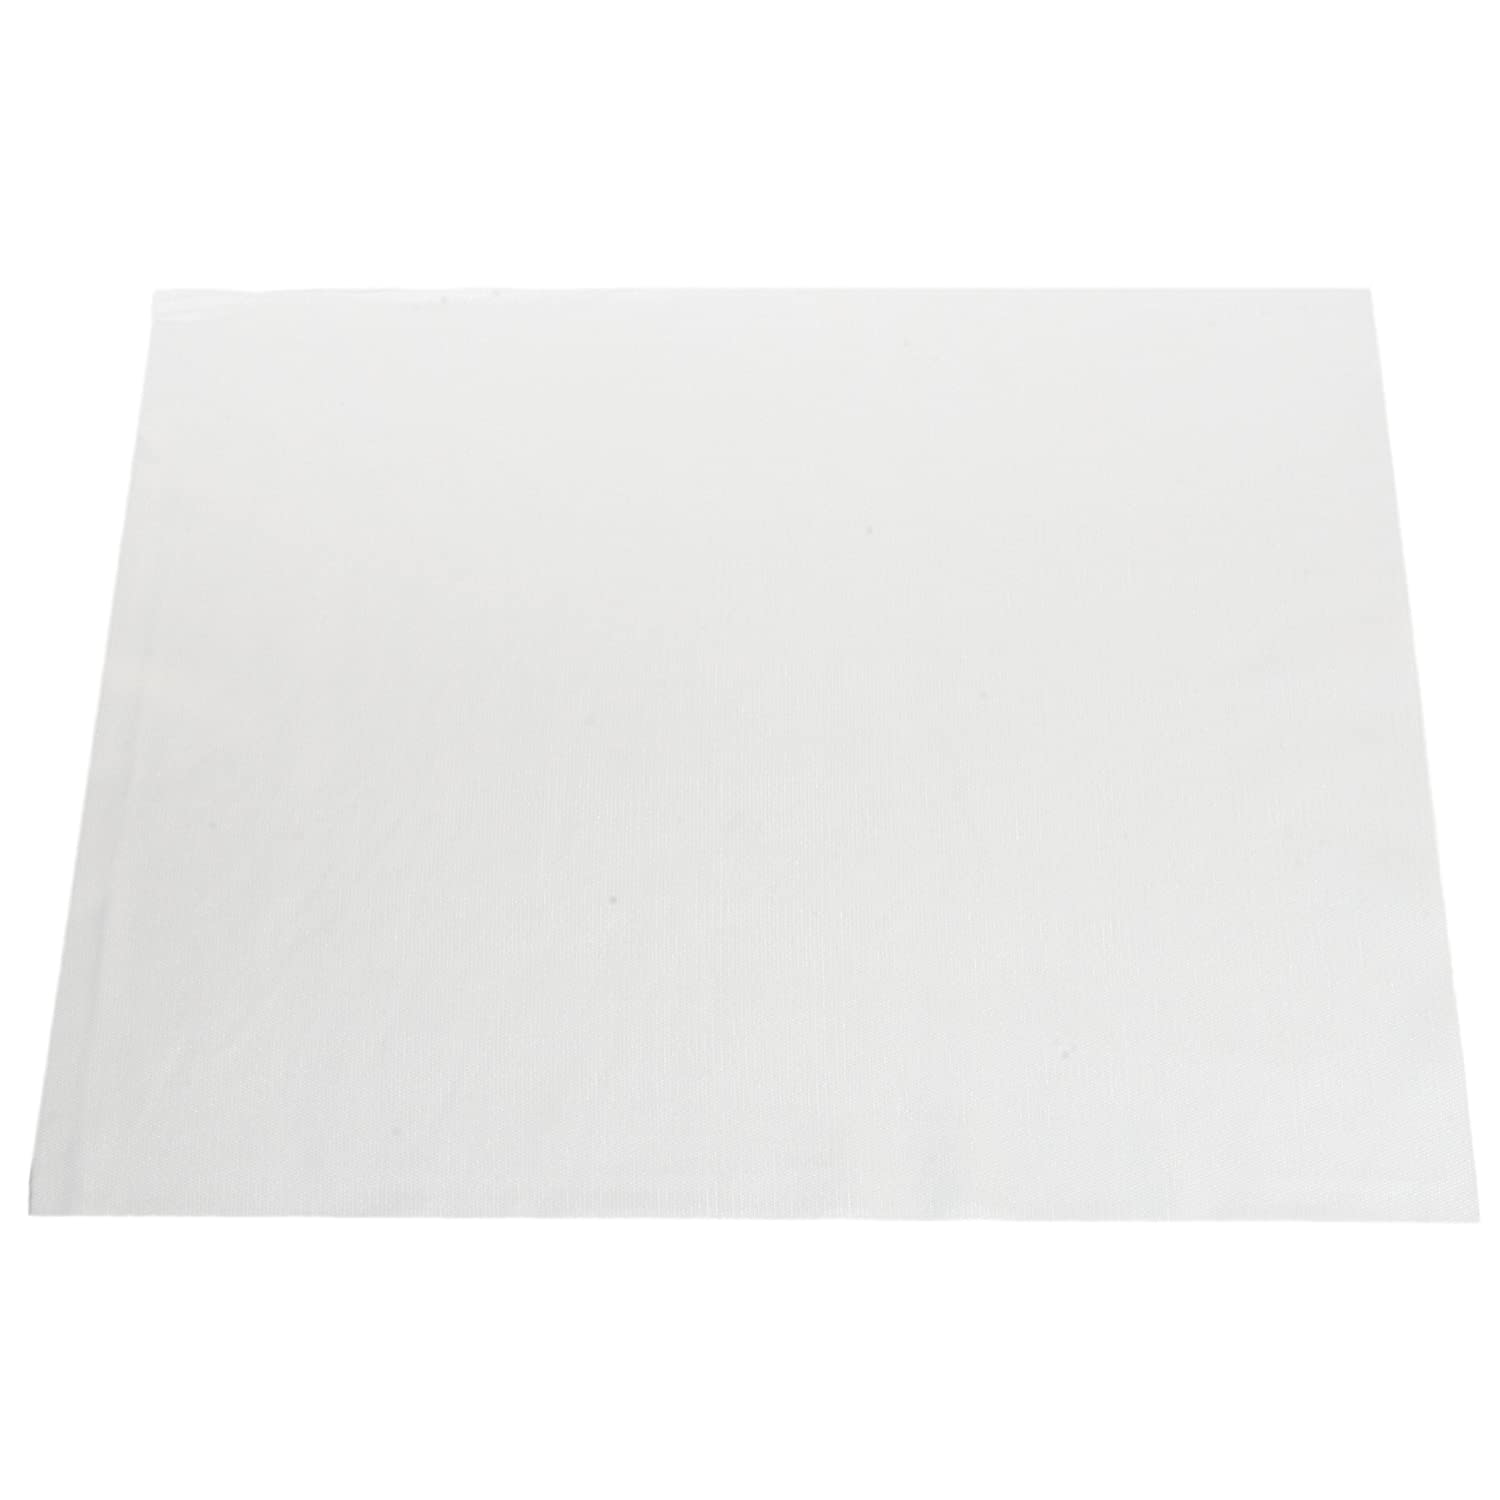 Dealing full price reduction Contec PZ-44 Amplitude Prozorb Polyester Nonw Popular brand Textured Cellulose